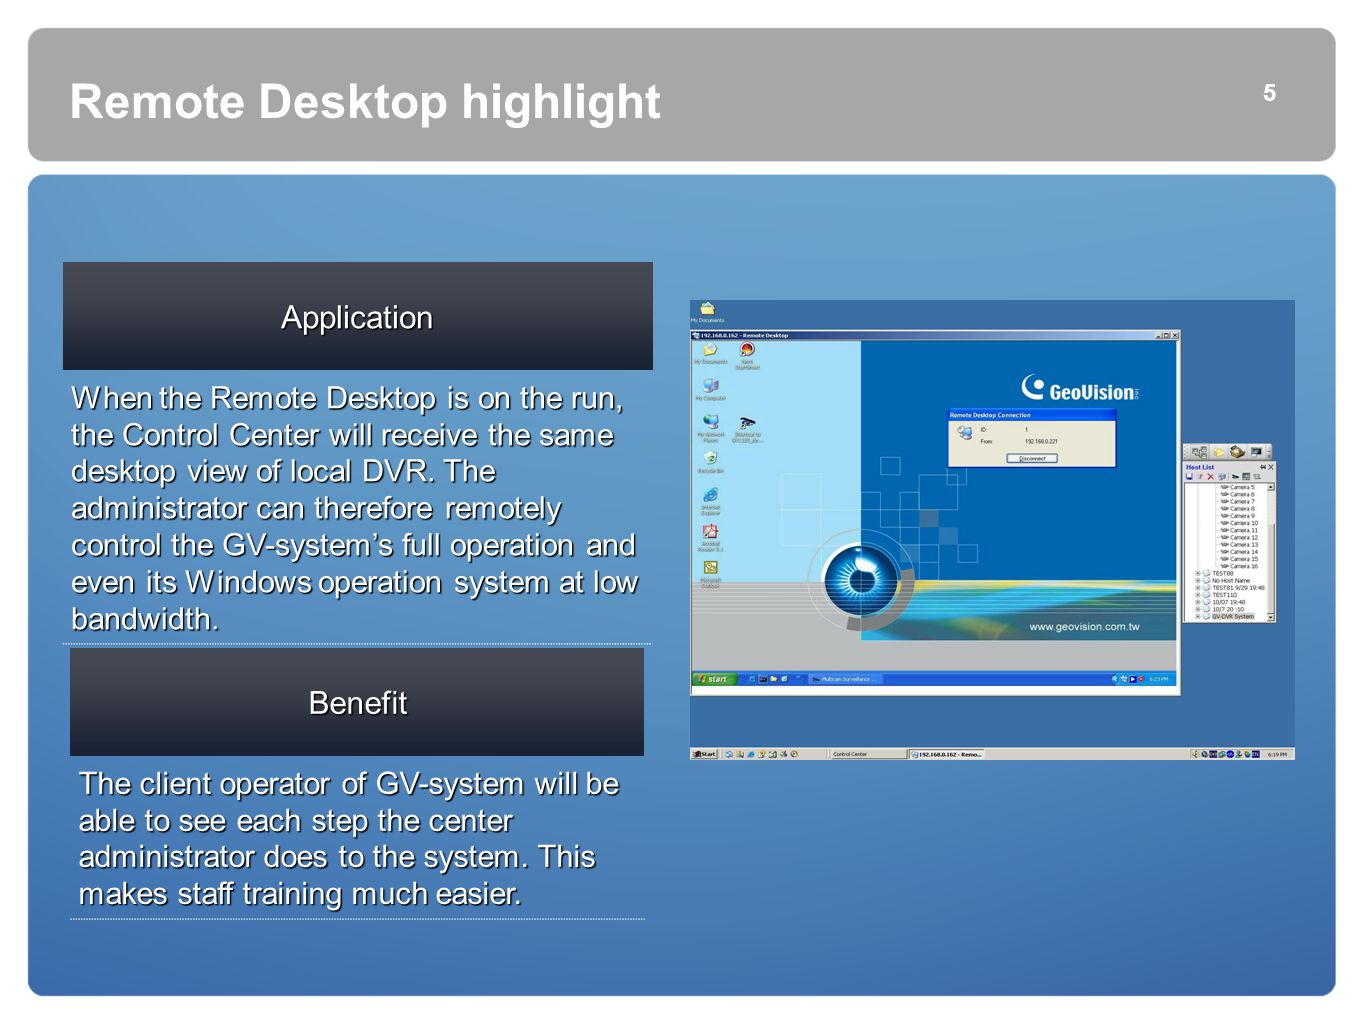 Remote Desktop highlight